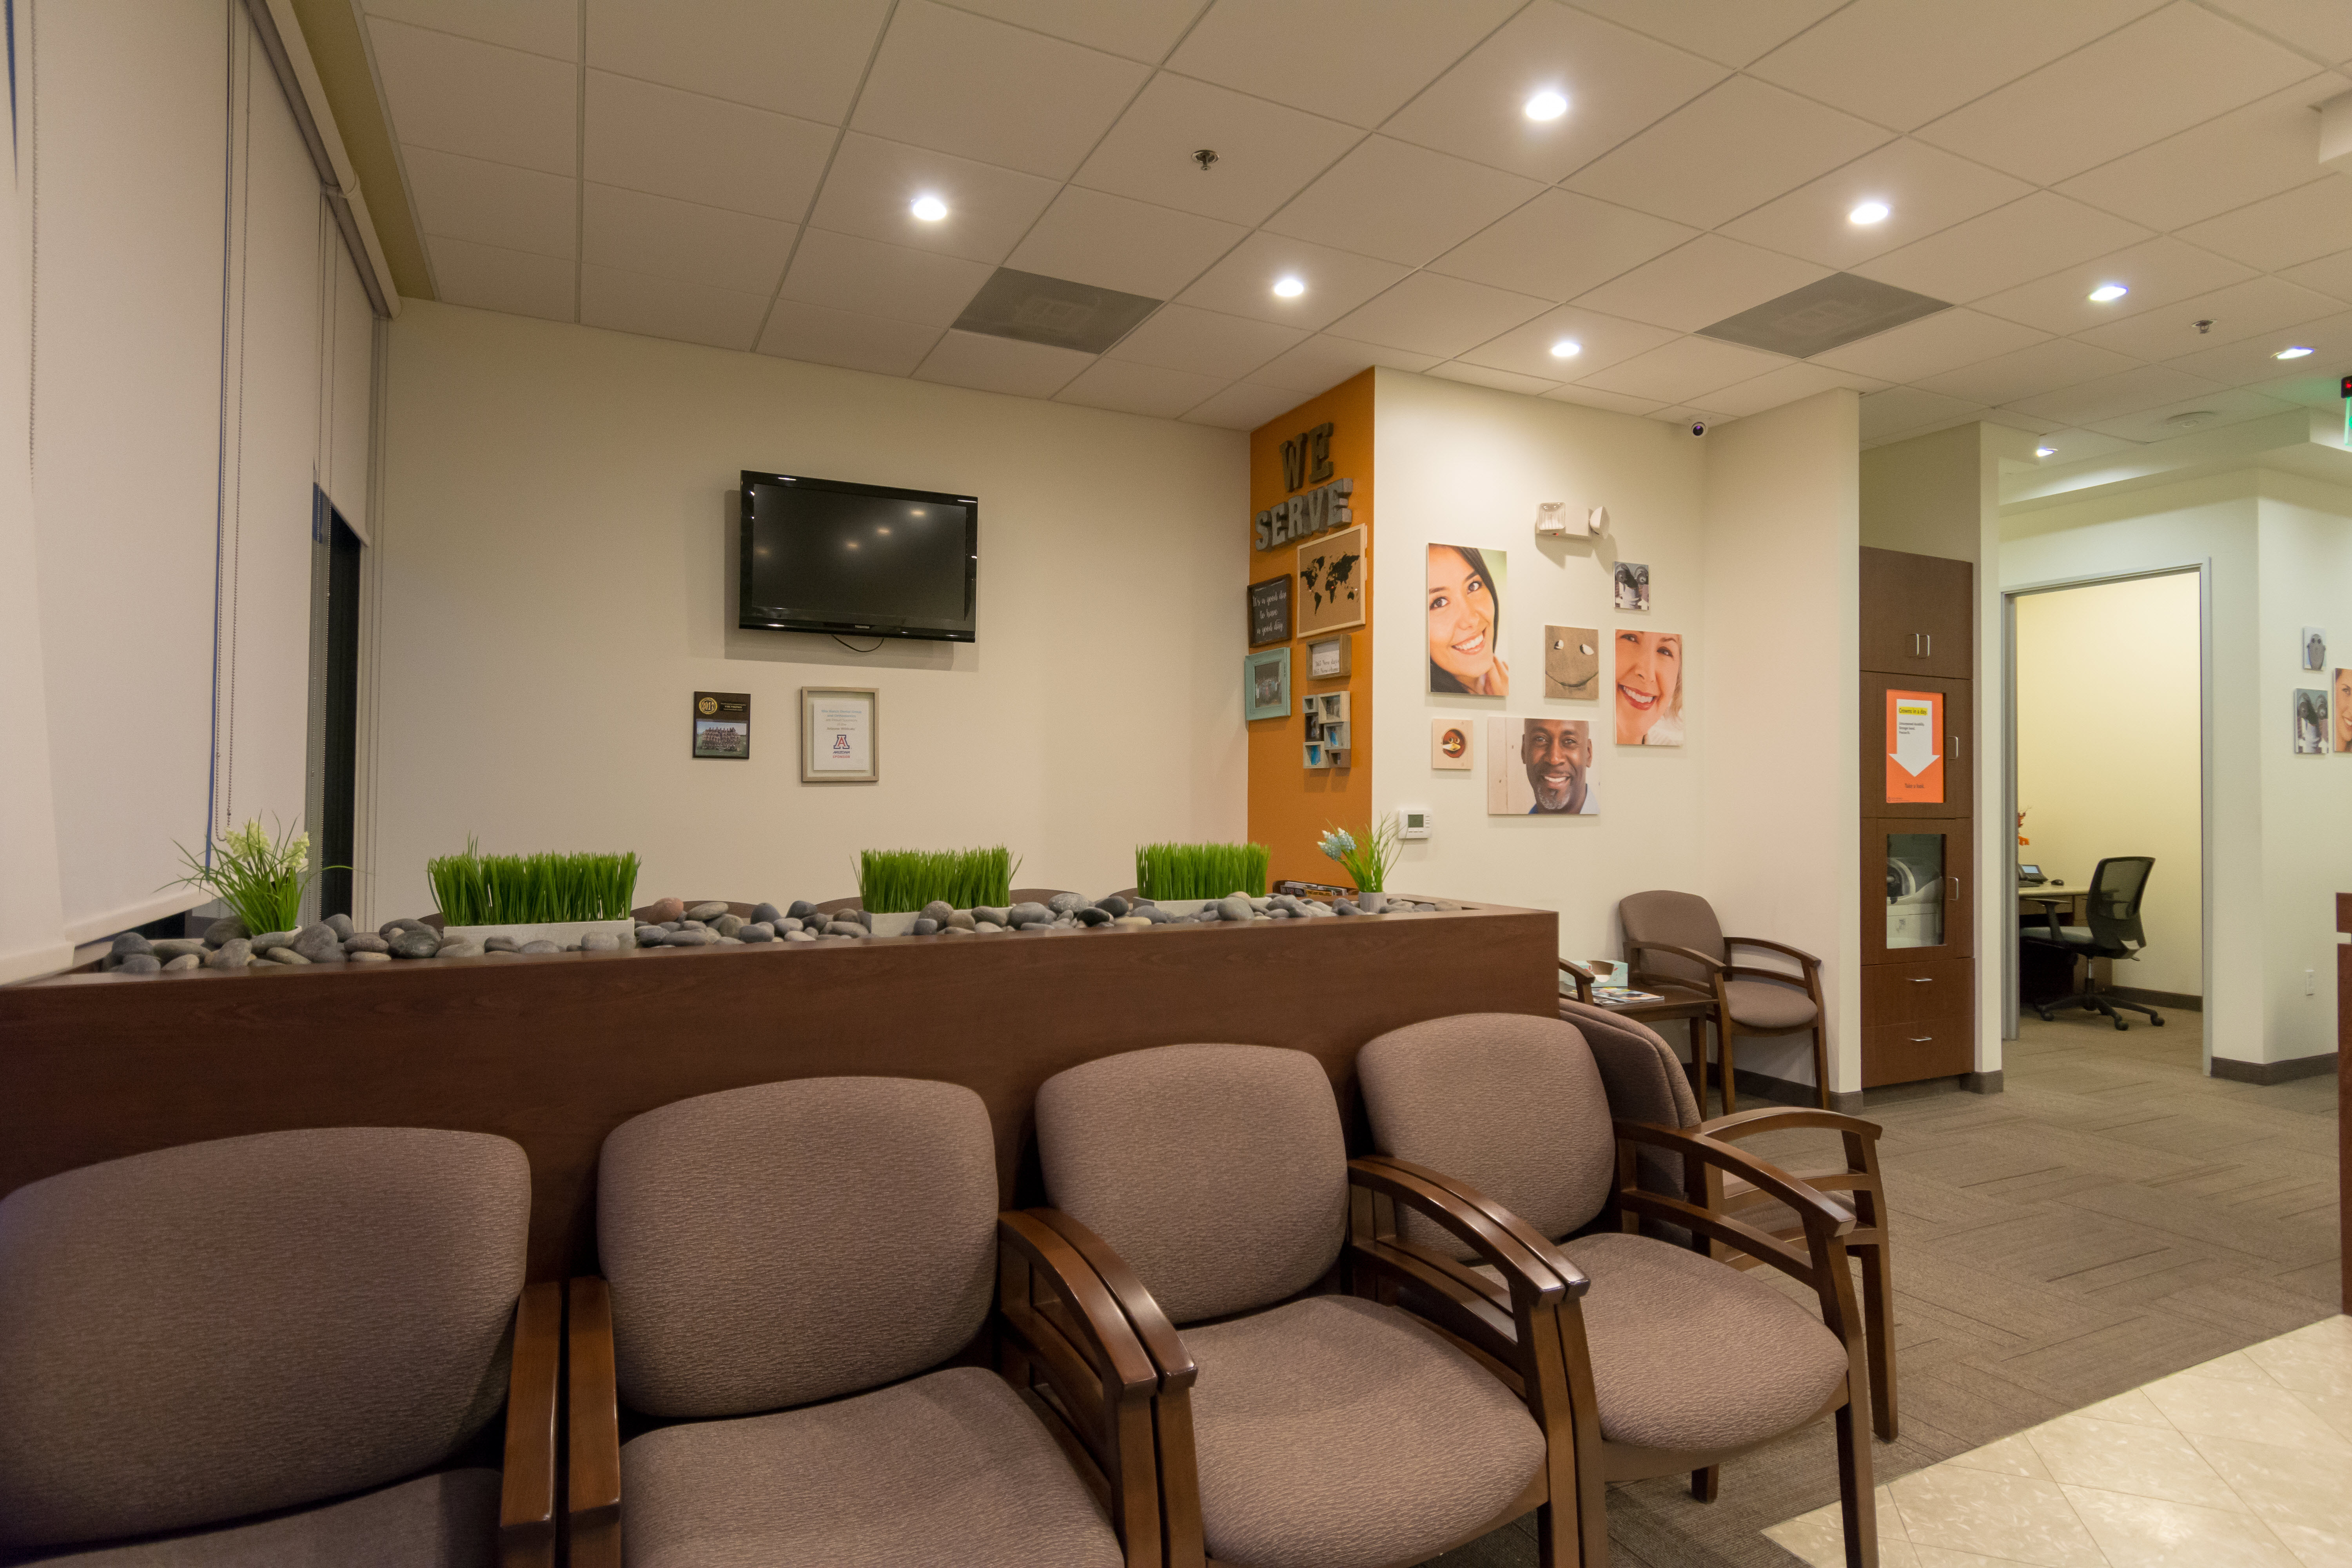 Rita Ranch Dental Group and Orthodontics image 2